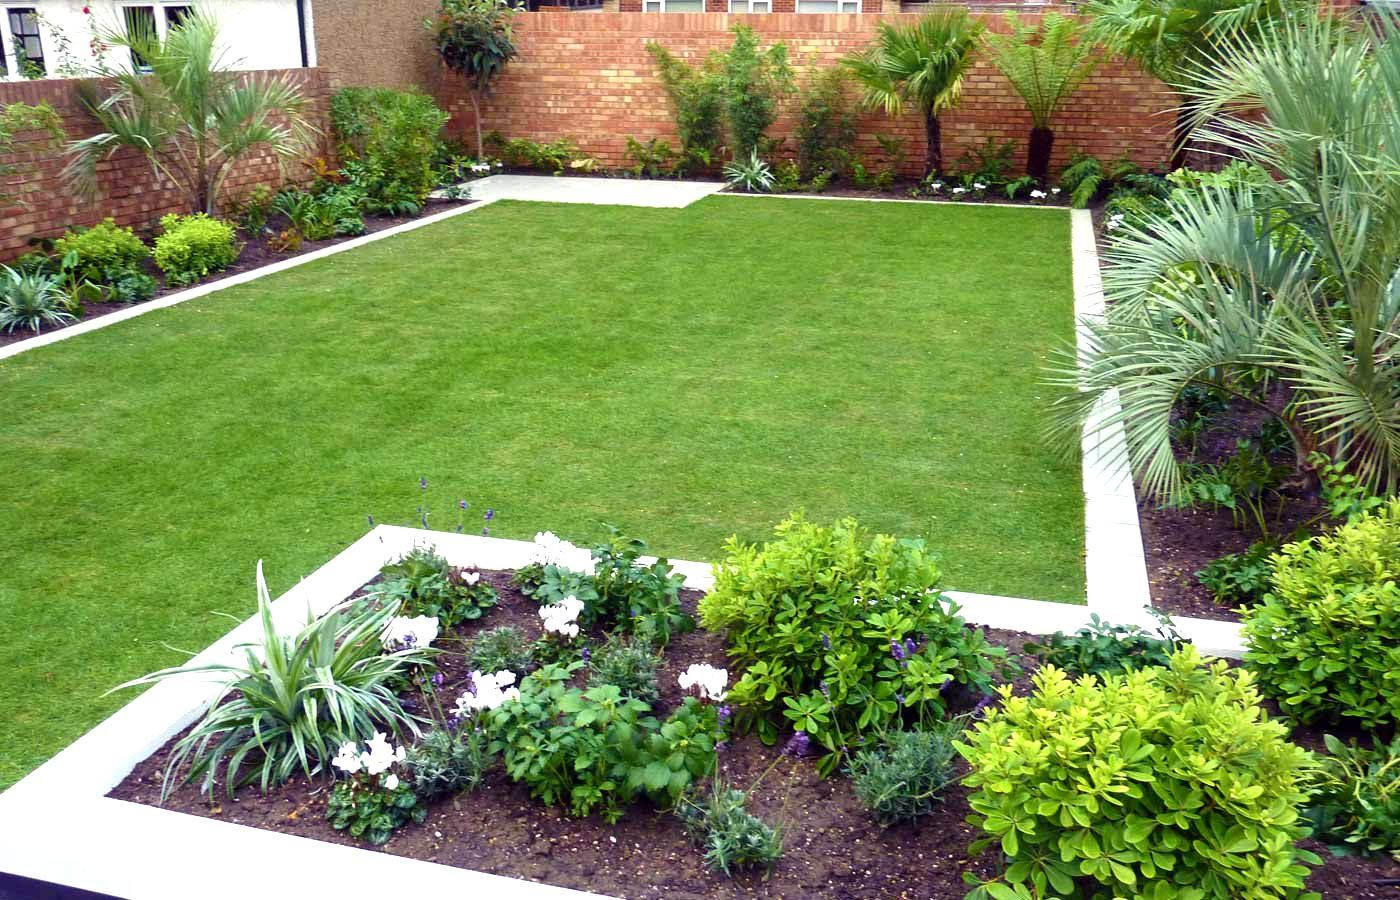 Simple garden designs no fret small garden design for Simple landscape design